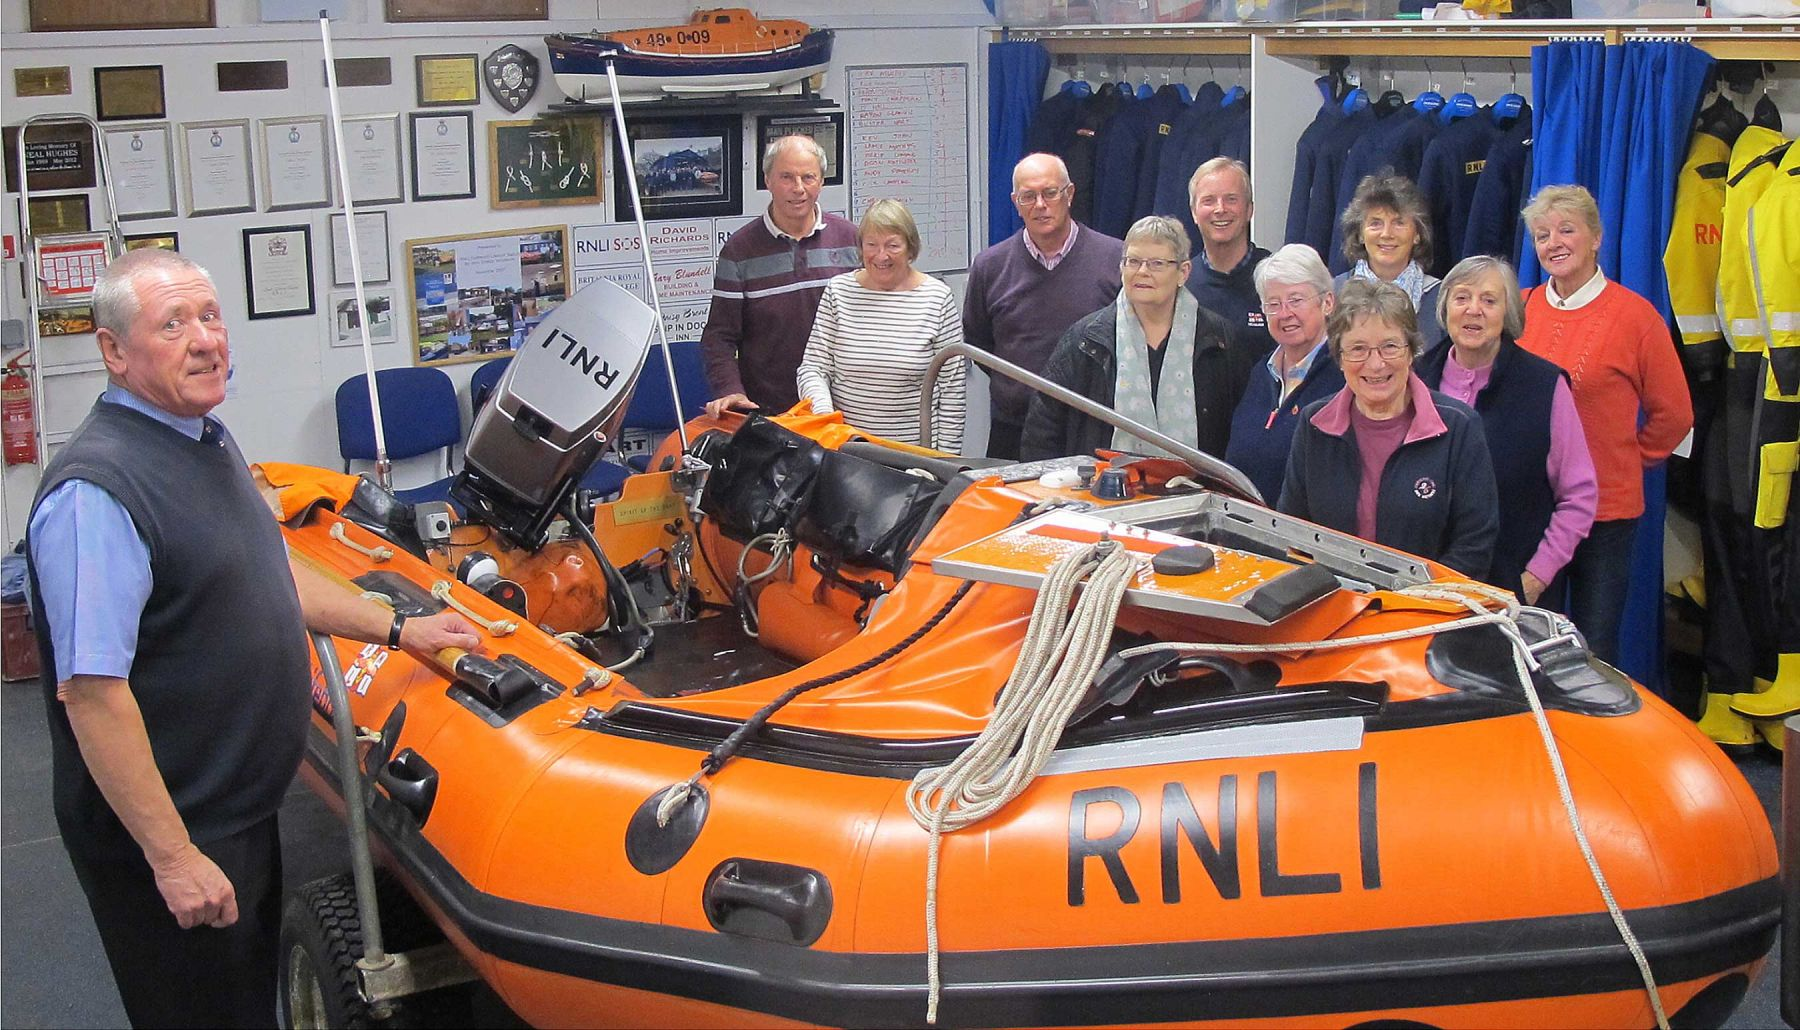 Rob Clements teaching the new Visitor Centre volunteers at the lifeboat station